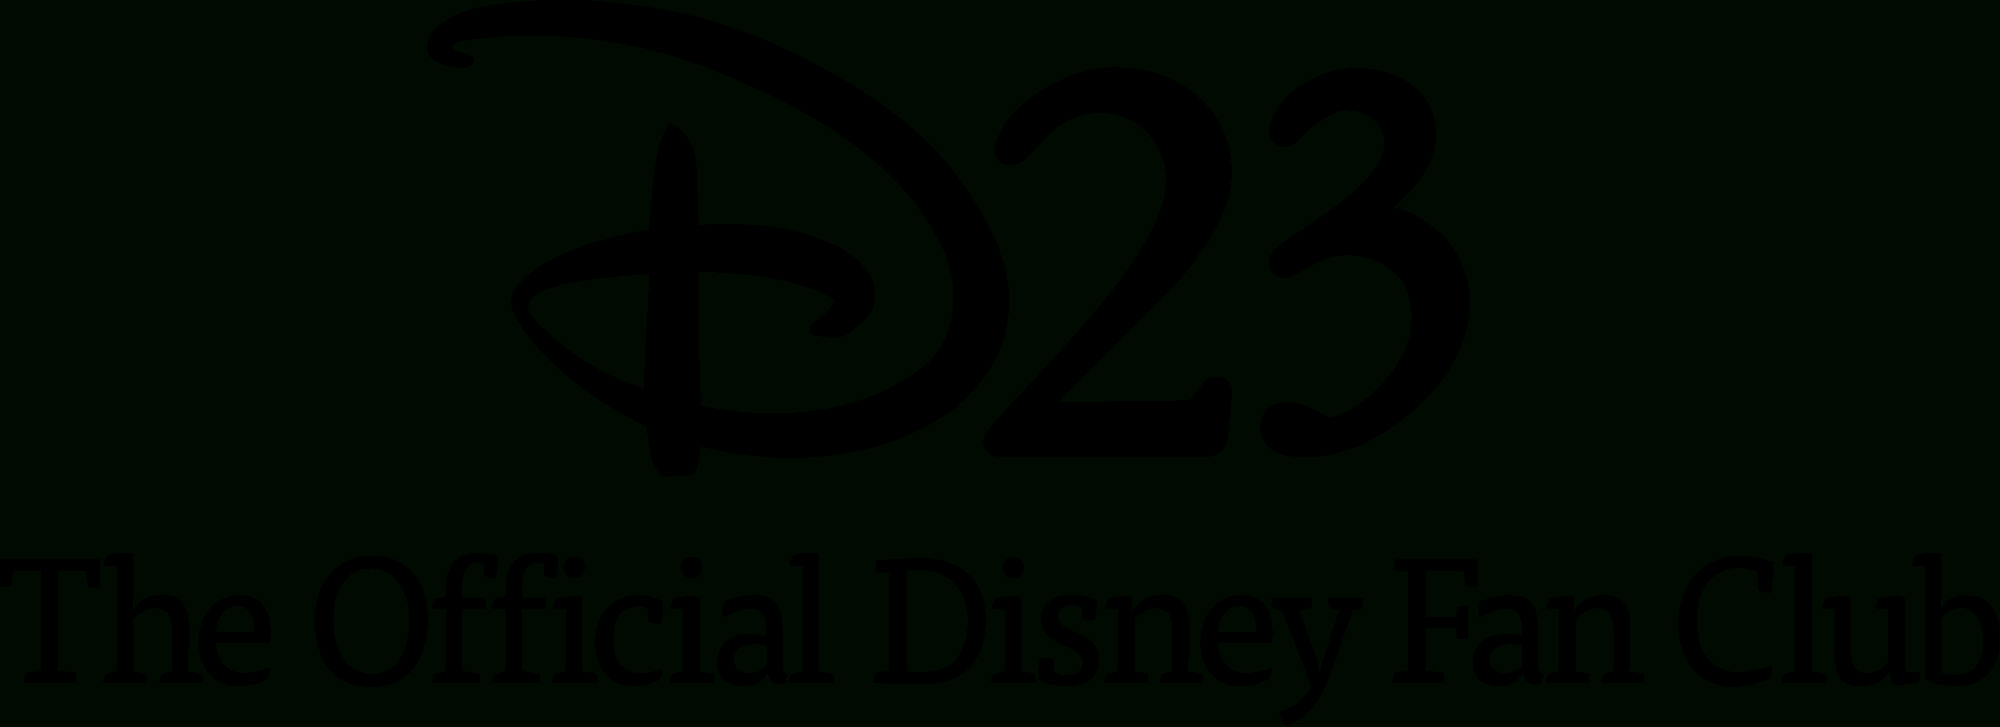 D23 Events Announced For 2018: Here's The Rundown intended for Disney Emoji Blitz Events Calendar 2020